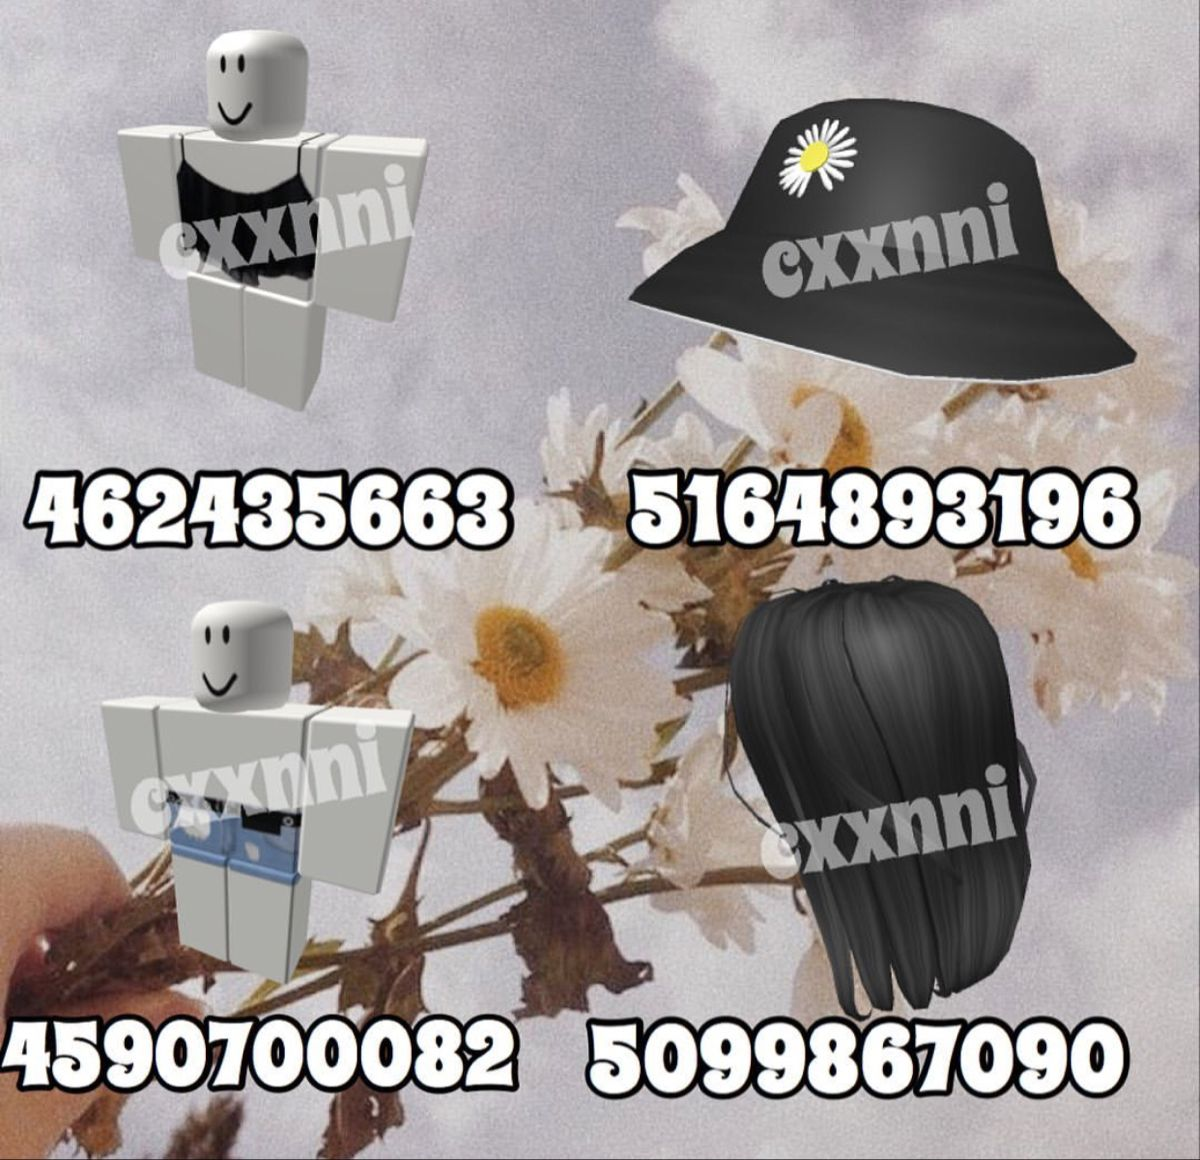 Trendy Black Outfit Coding Clothes Roblox Shirt Roblox Codes [ 1160 x 1200 Pixel ]